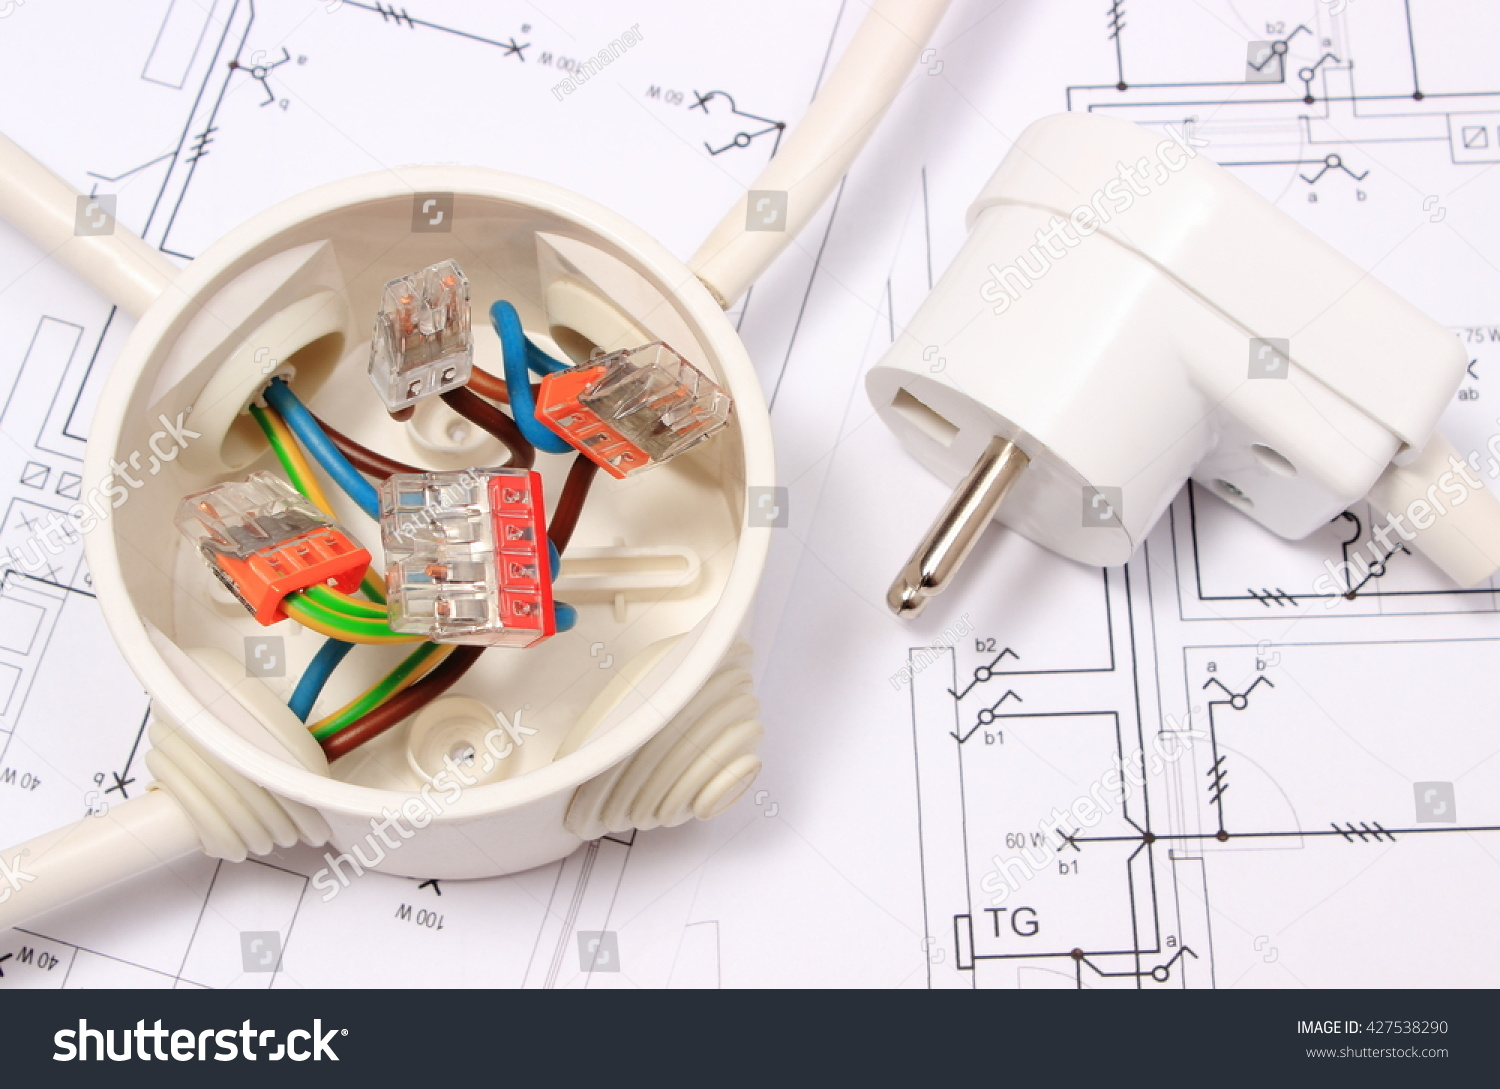 hight resolution of copper wire connections in electrical box and electric plug lying on construction drawing of house